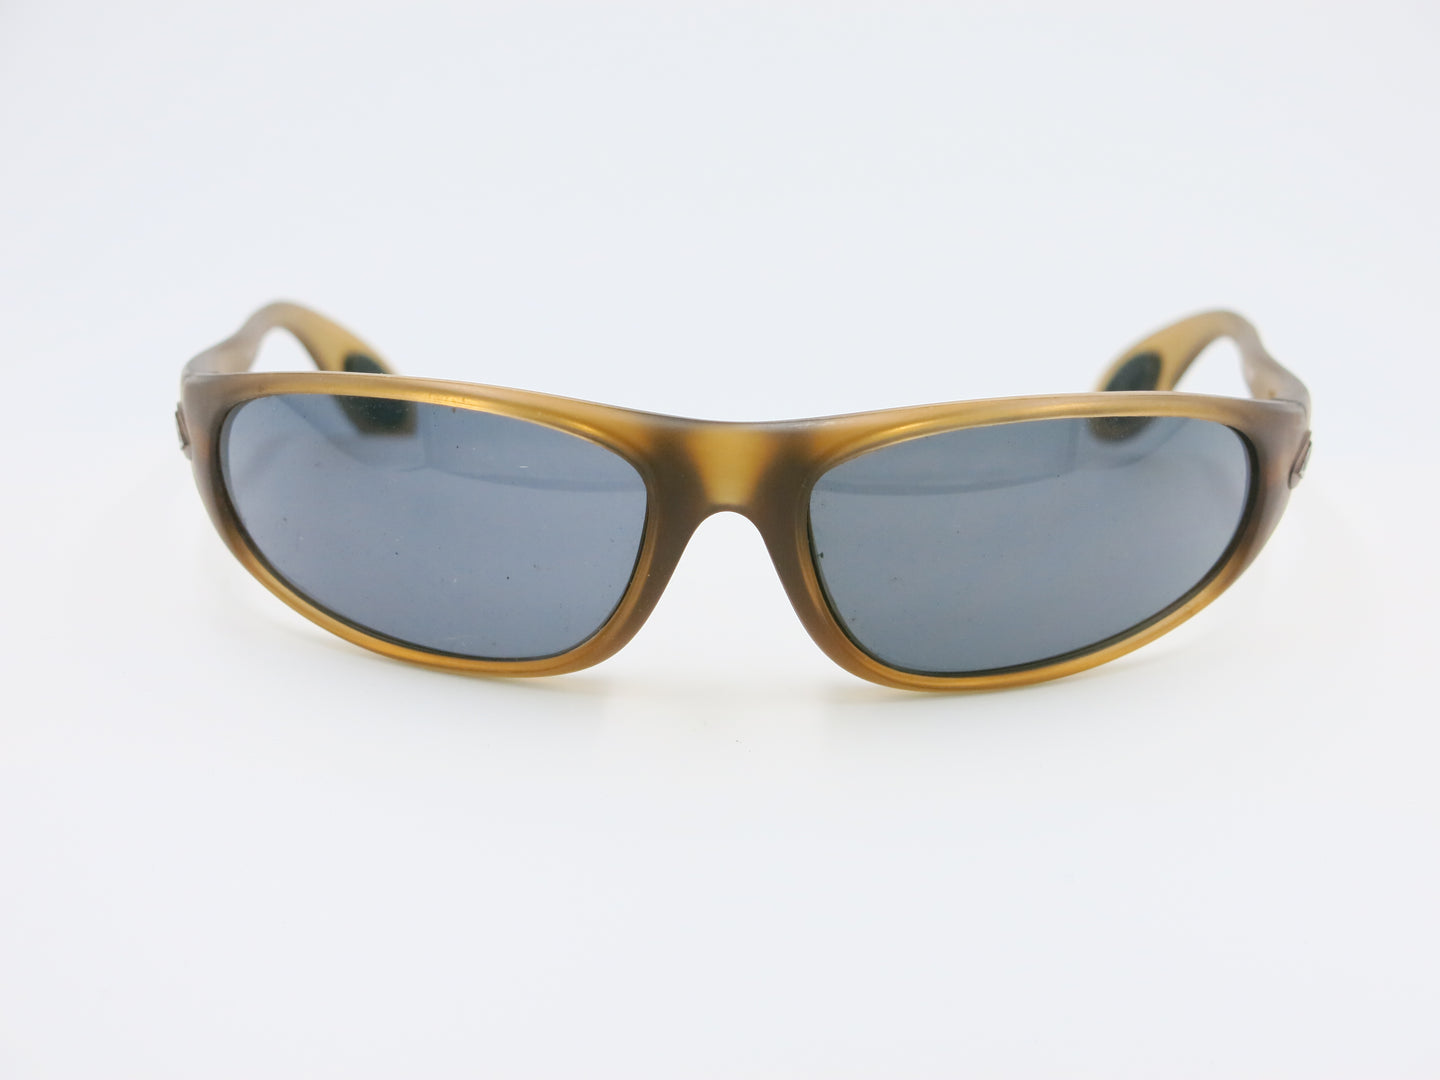 Killer Loop Sunglasses - K 0703 | Sunglasses by Killer Loop | Friedman & Sons